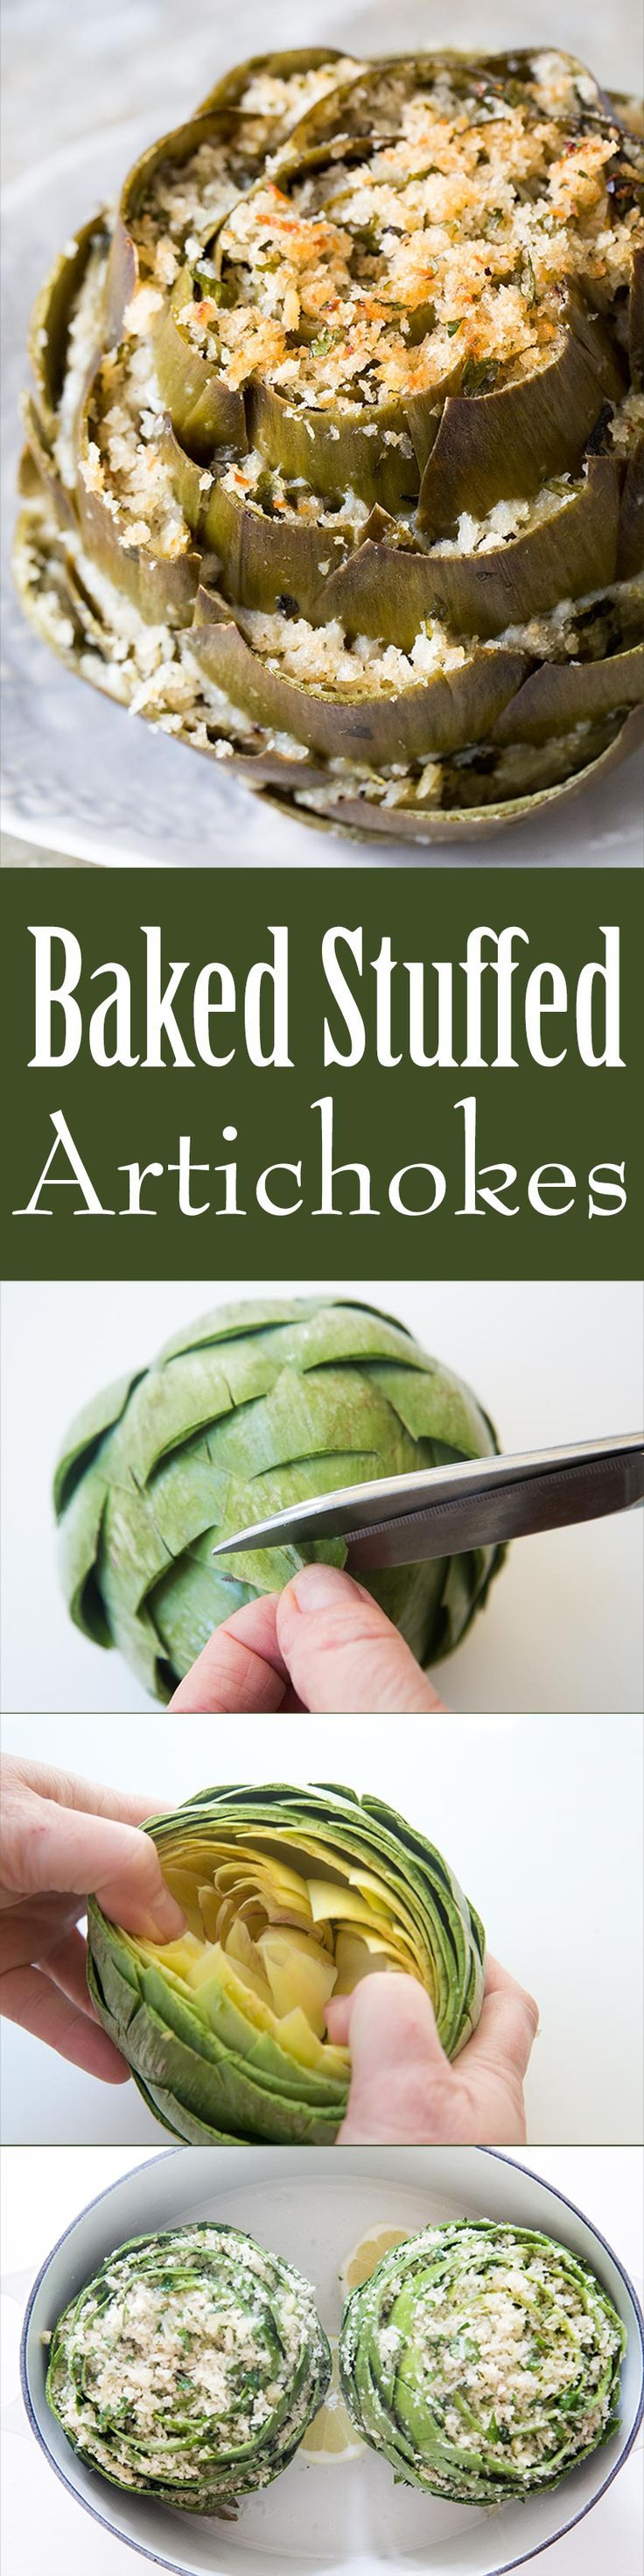 Stuffed artichokes are a perfect artichoke appetizer! Globe artichokes are trimmed and stuffed with herbed parmesan breadcrumb stuffing, then baked. On SimplyRecipes.com